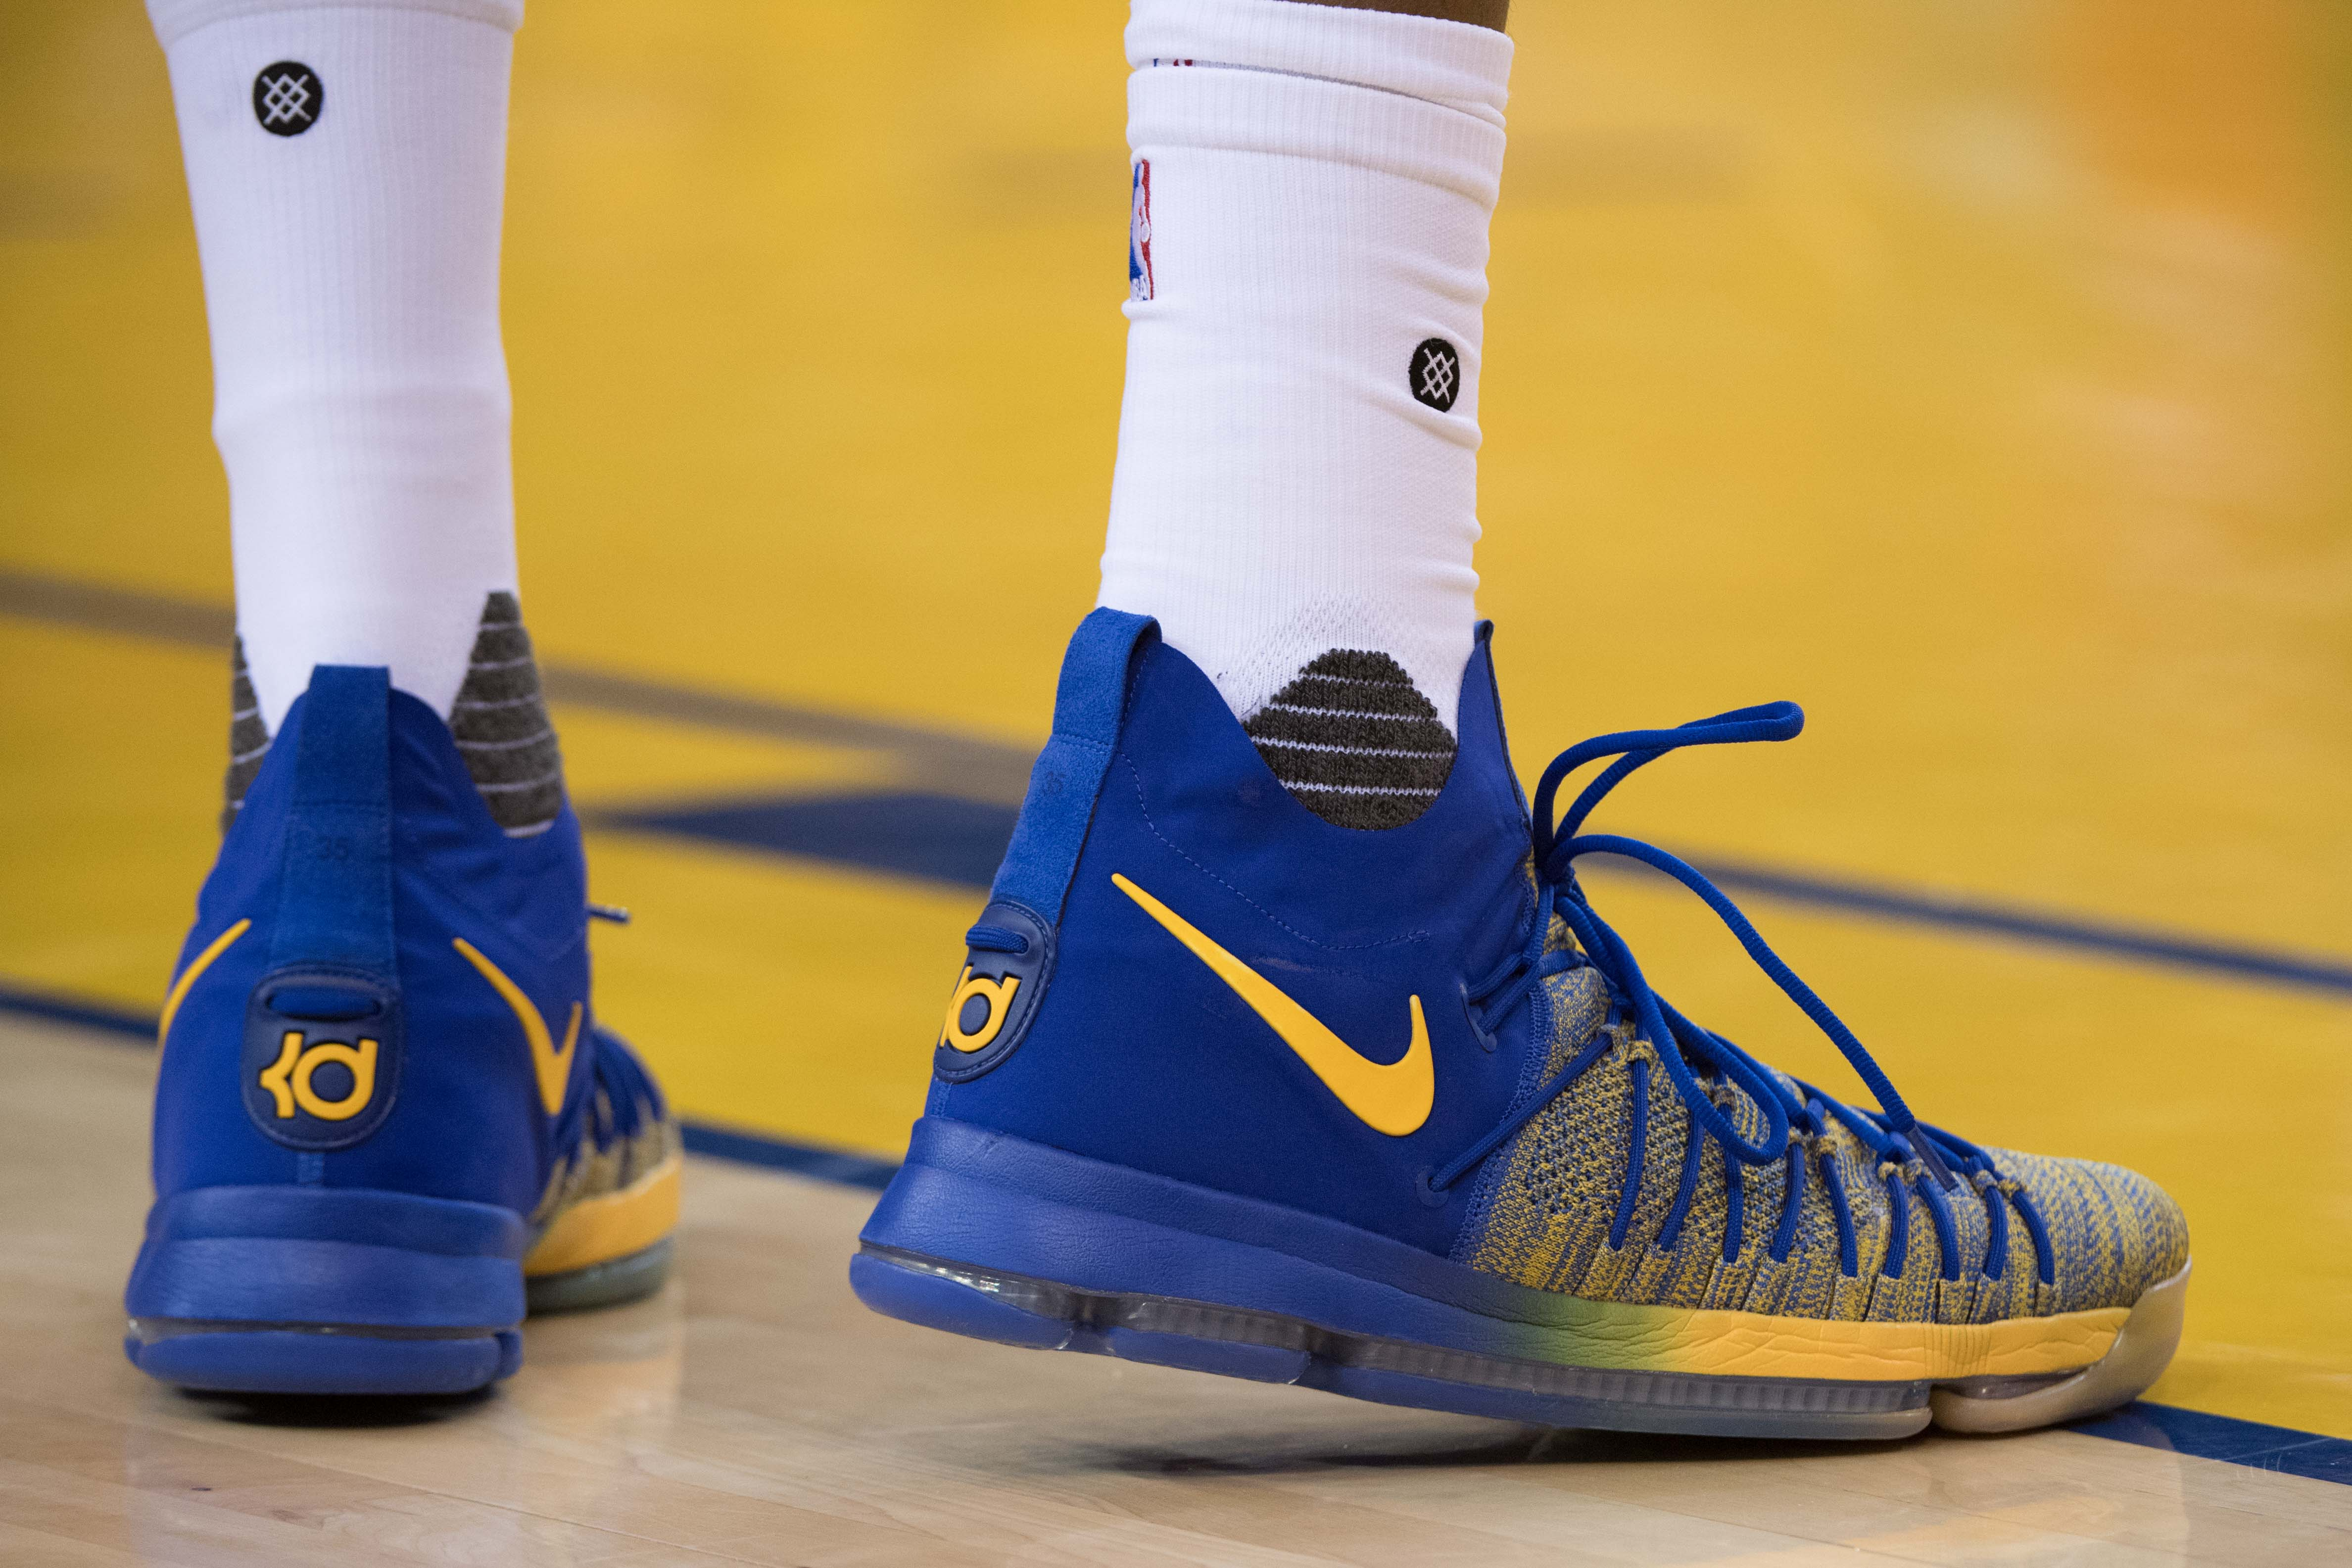 Durant in his KD 9s. (Kyle Terada-USA TODAY Sports)